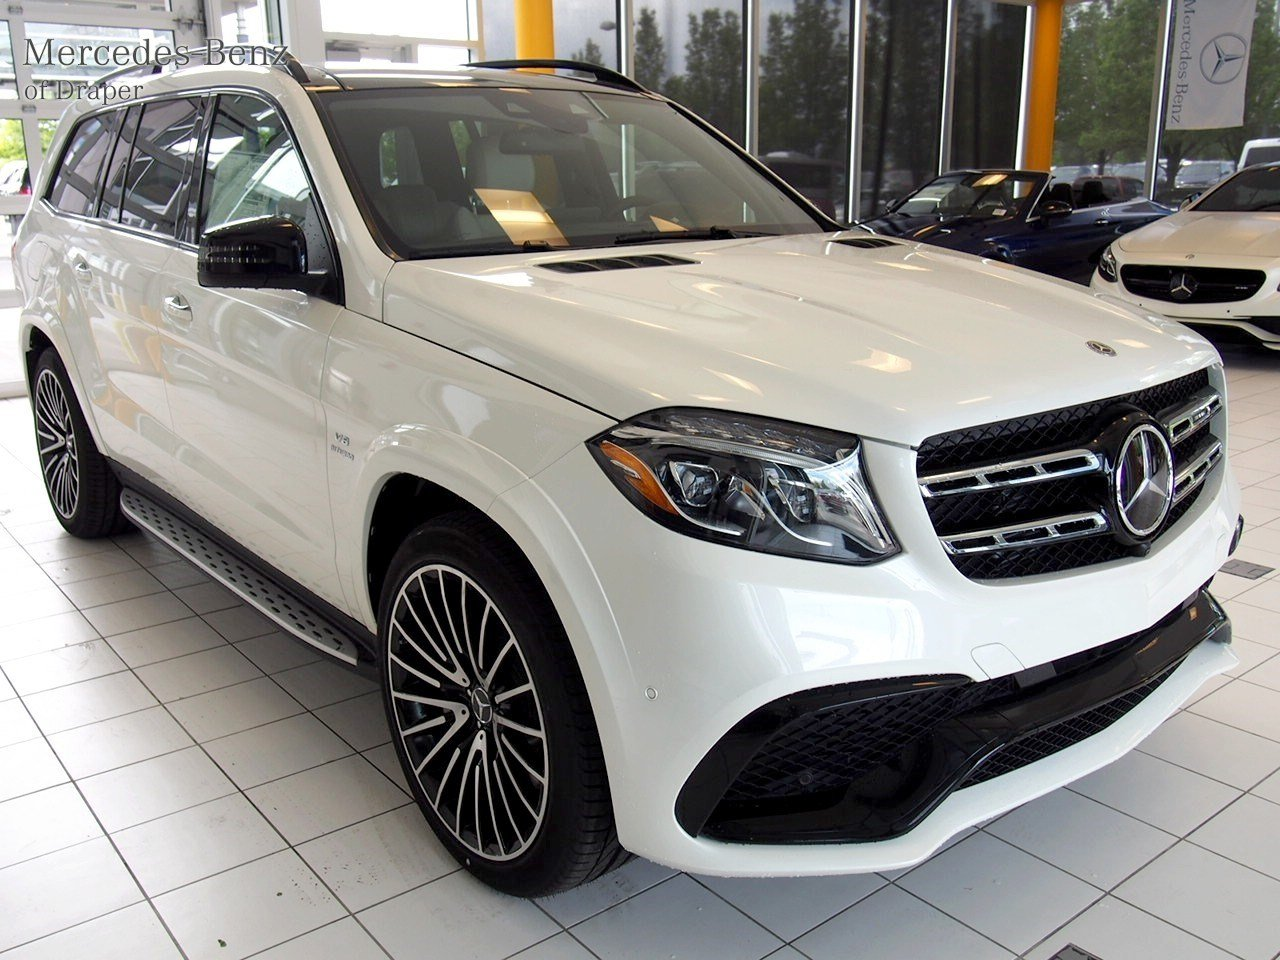 New 2017 mercedes benz gls gls 63 amg 4matic suv in for Amg com mercedes benz